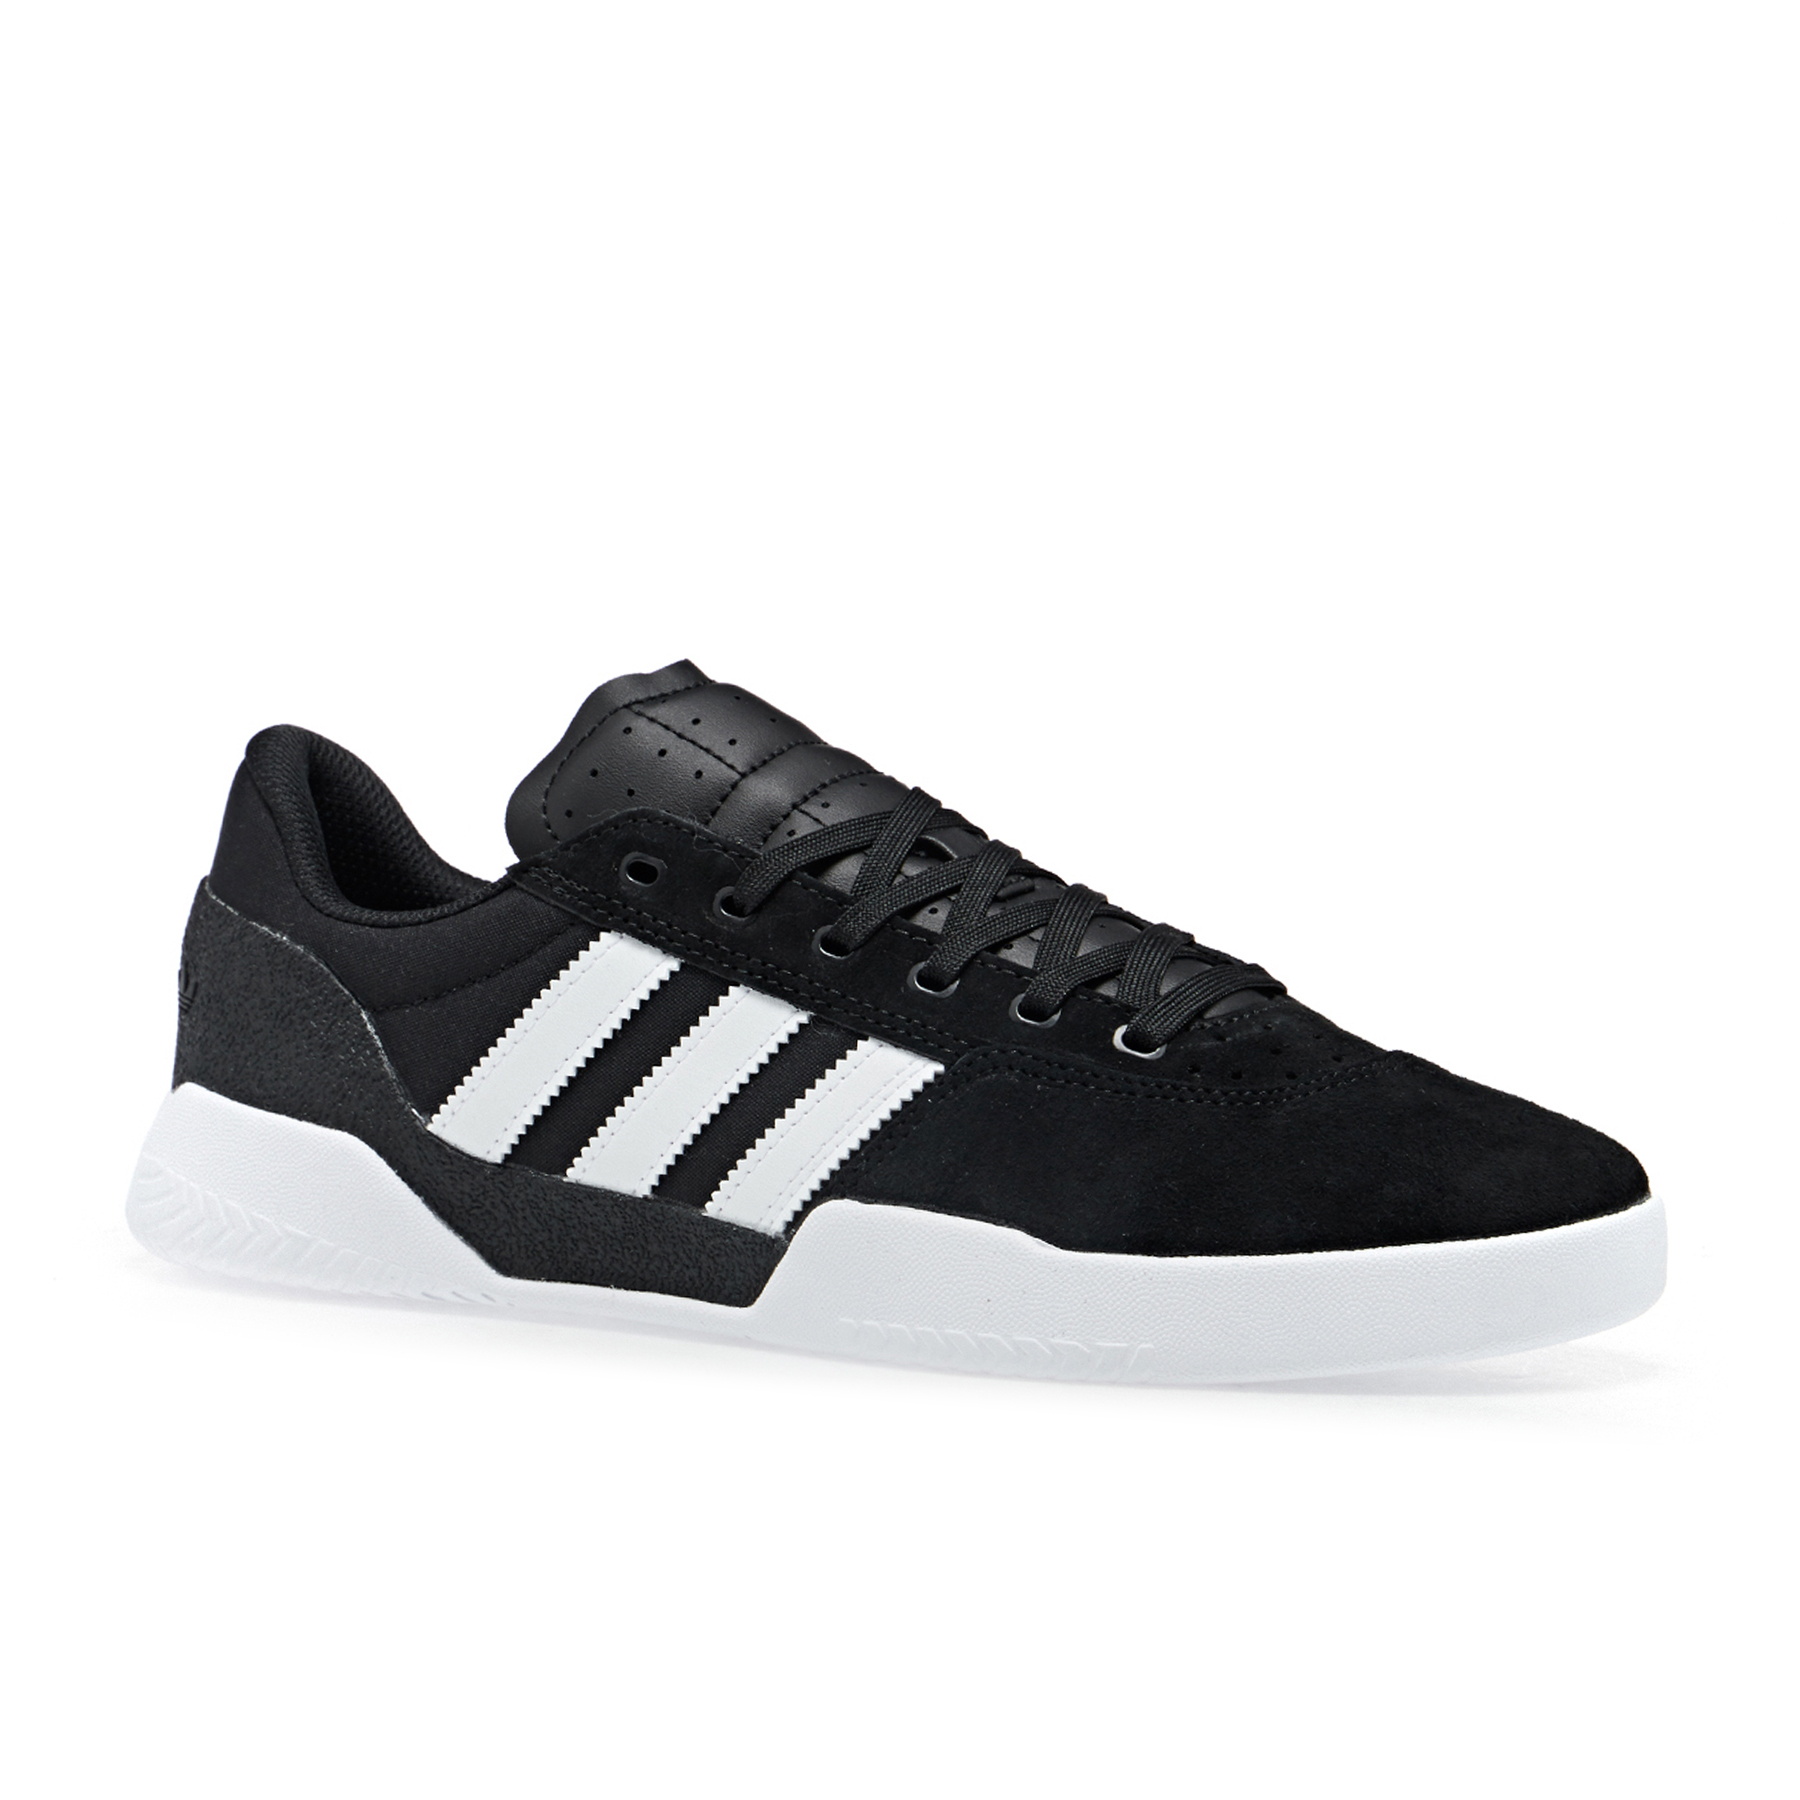 Adidas City Cup Shoes | Free Delivery Options